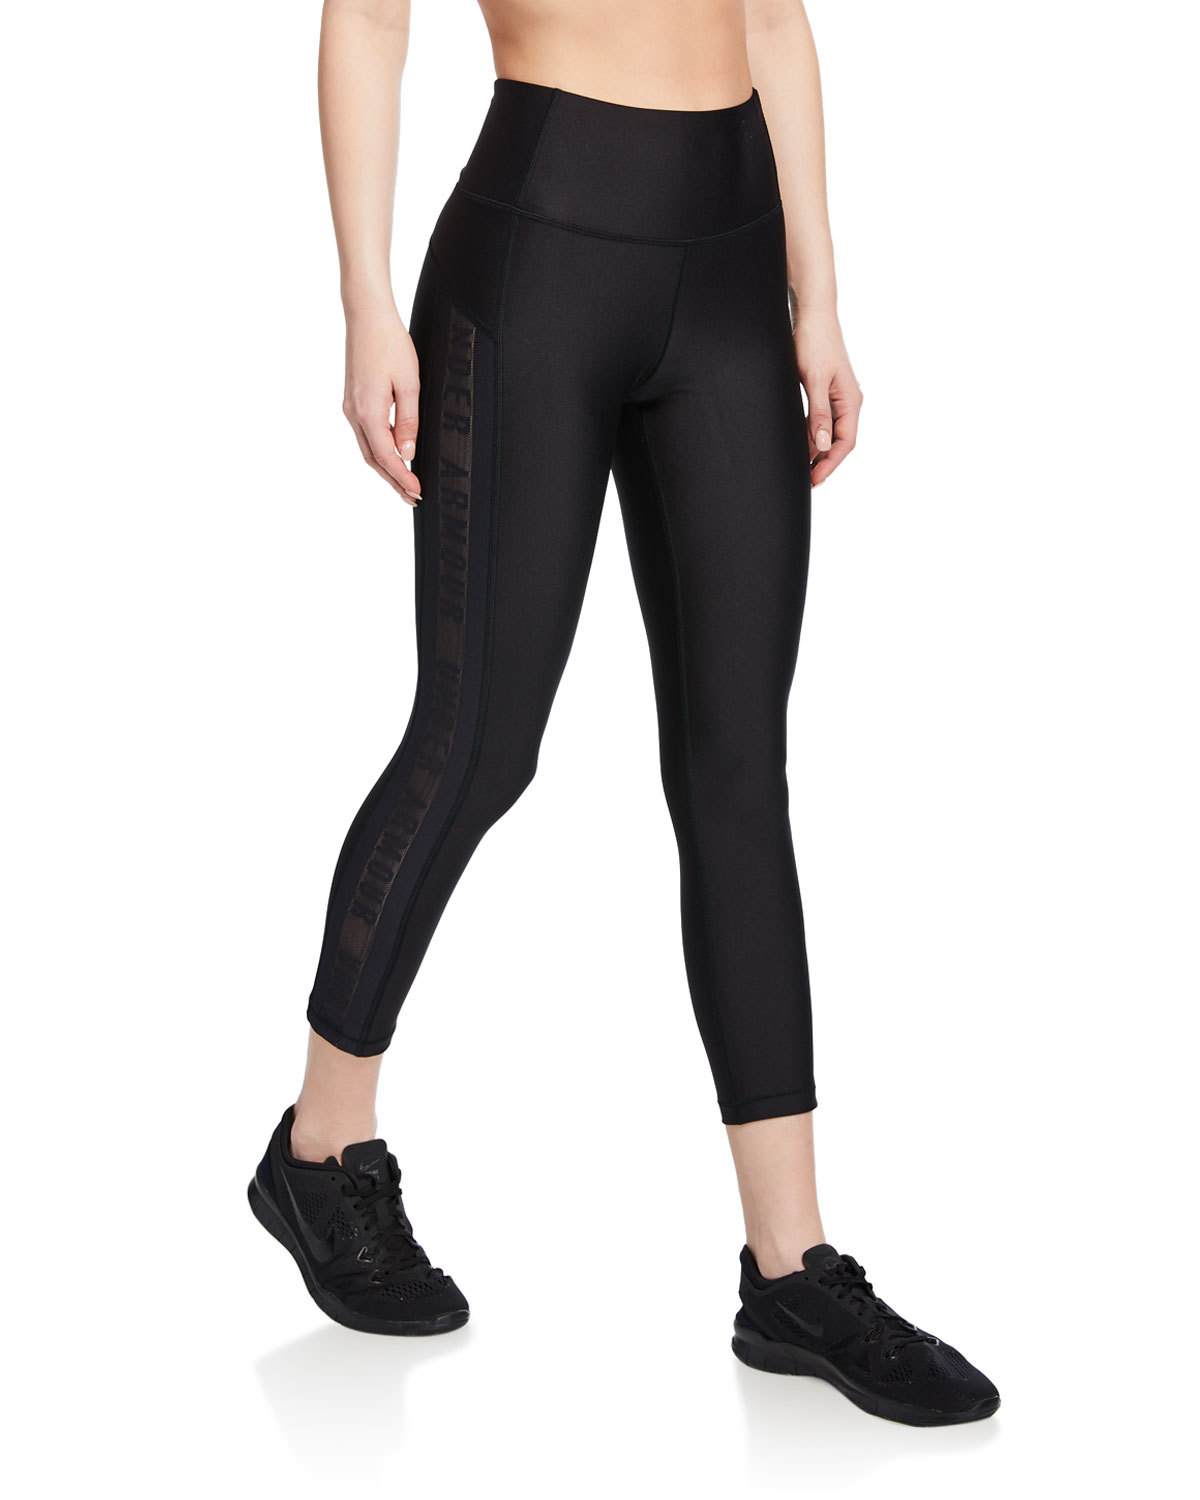 b389e97374486 Under Armour HeatGear Armour Ankle Crop Branded Leggings | Neiman Marcus